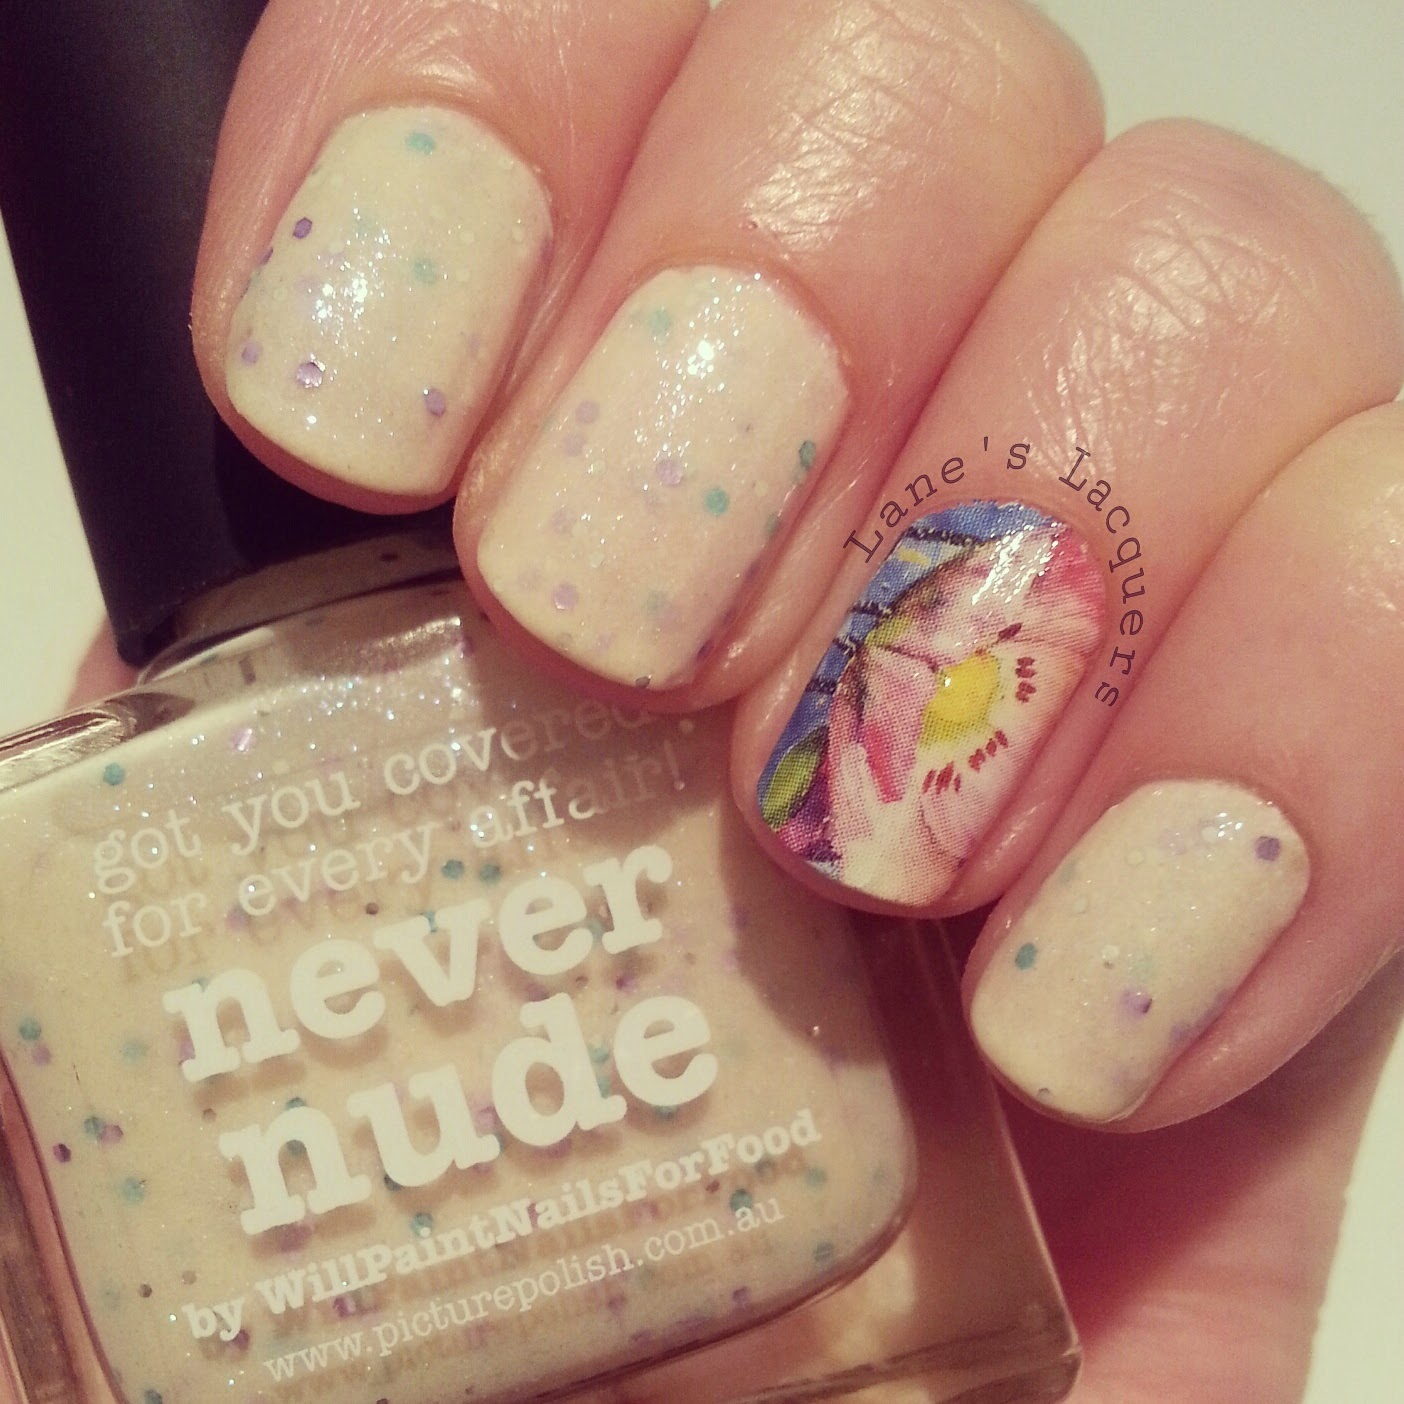 picture-polish-never-nude-swatch-nails-born-pretty-floral-water-transfer-art (2)